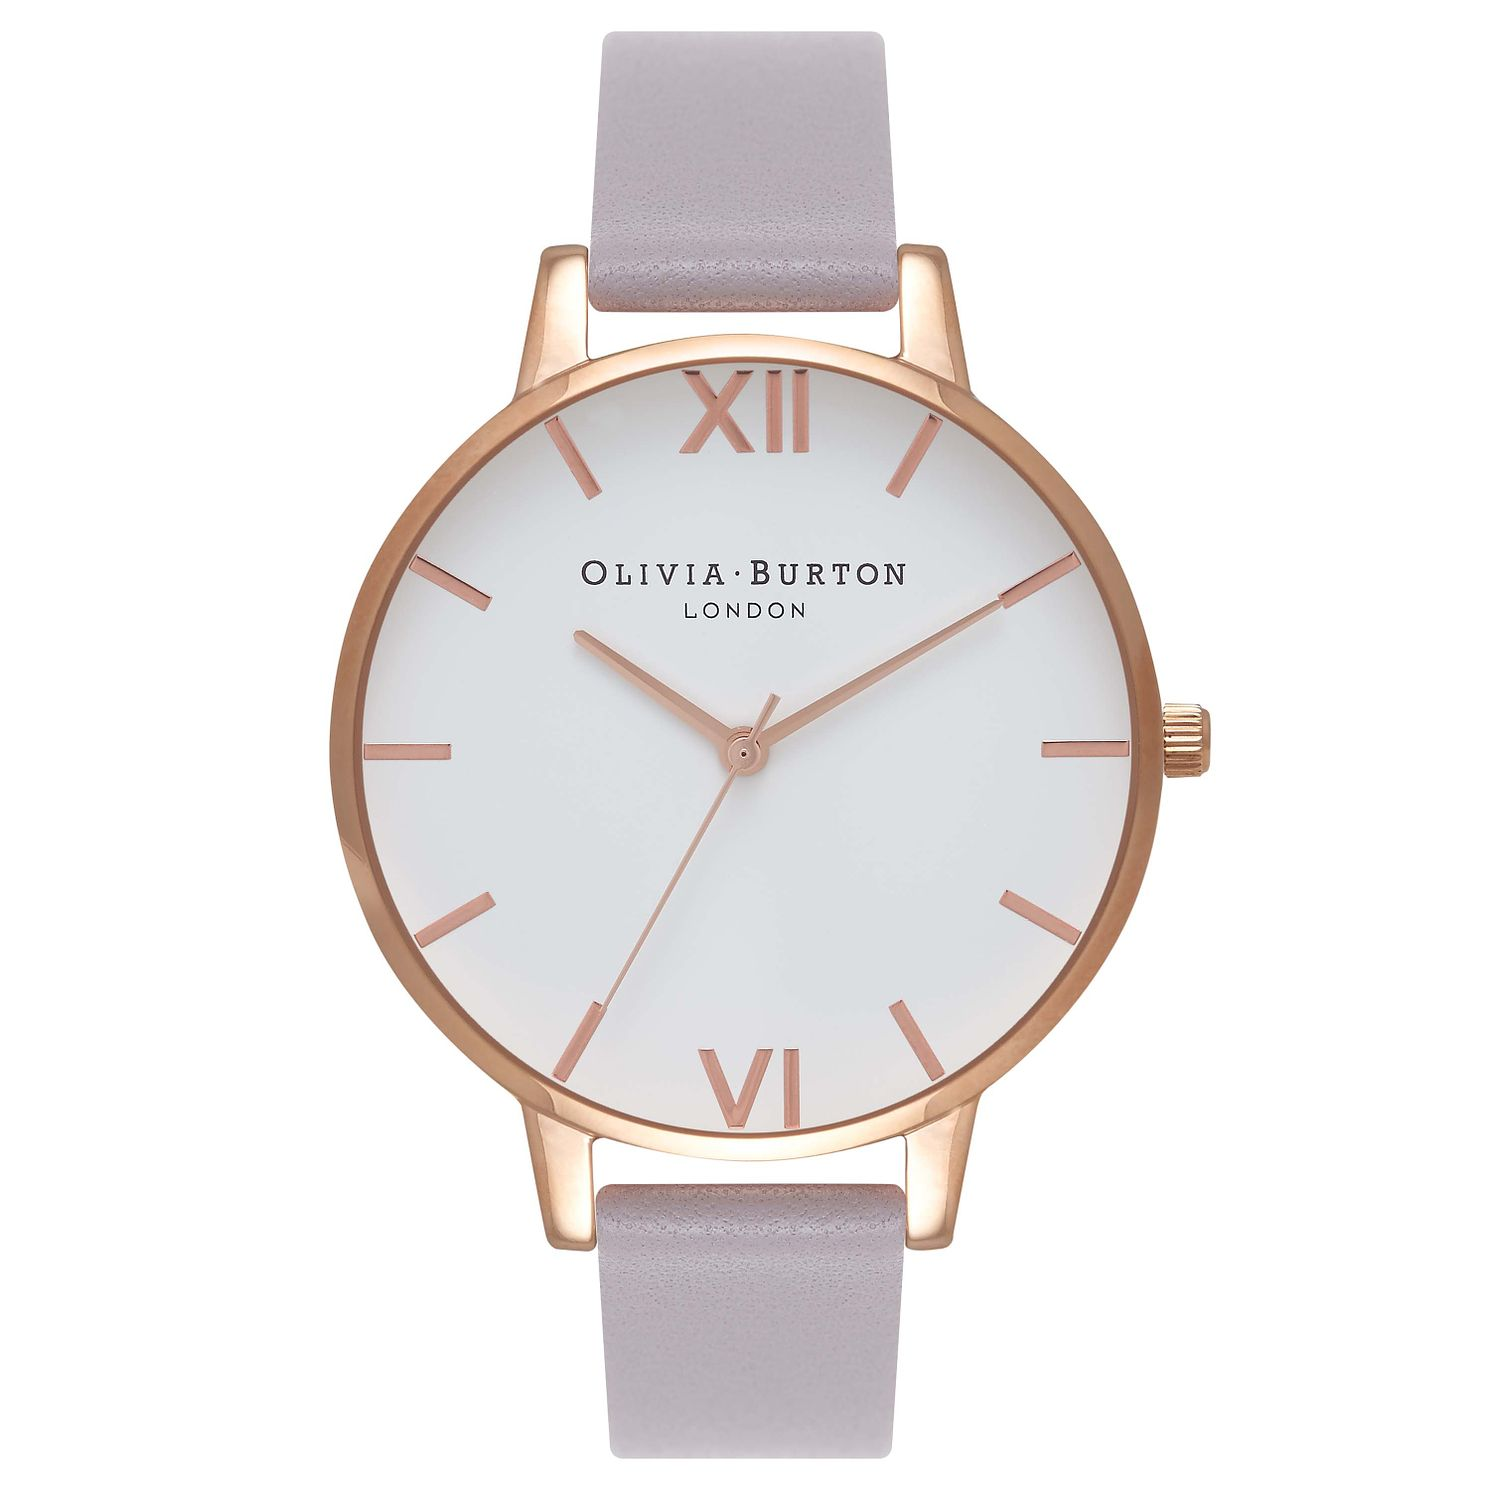 Olivia Burton Parma Violet Ladies' Lilac Leather Strap Watch - Product number 5878683